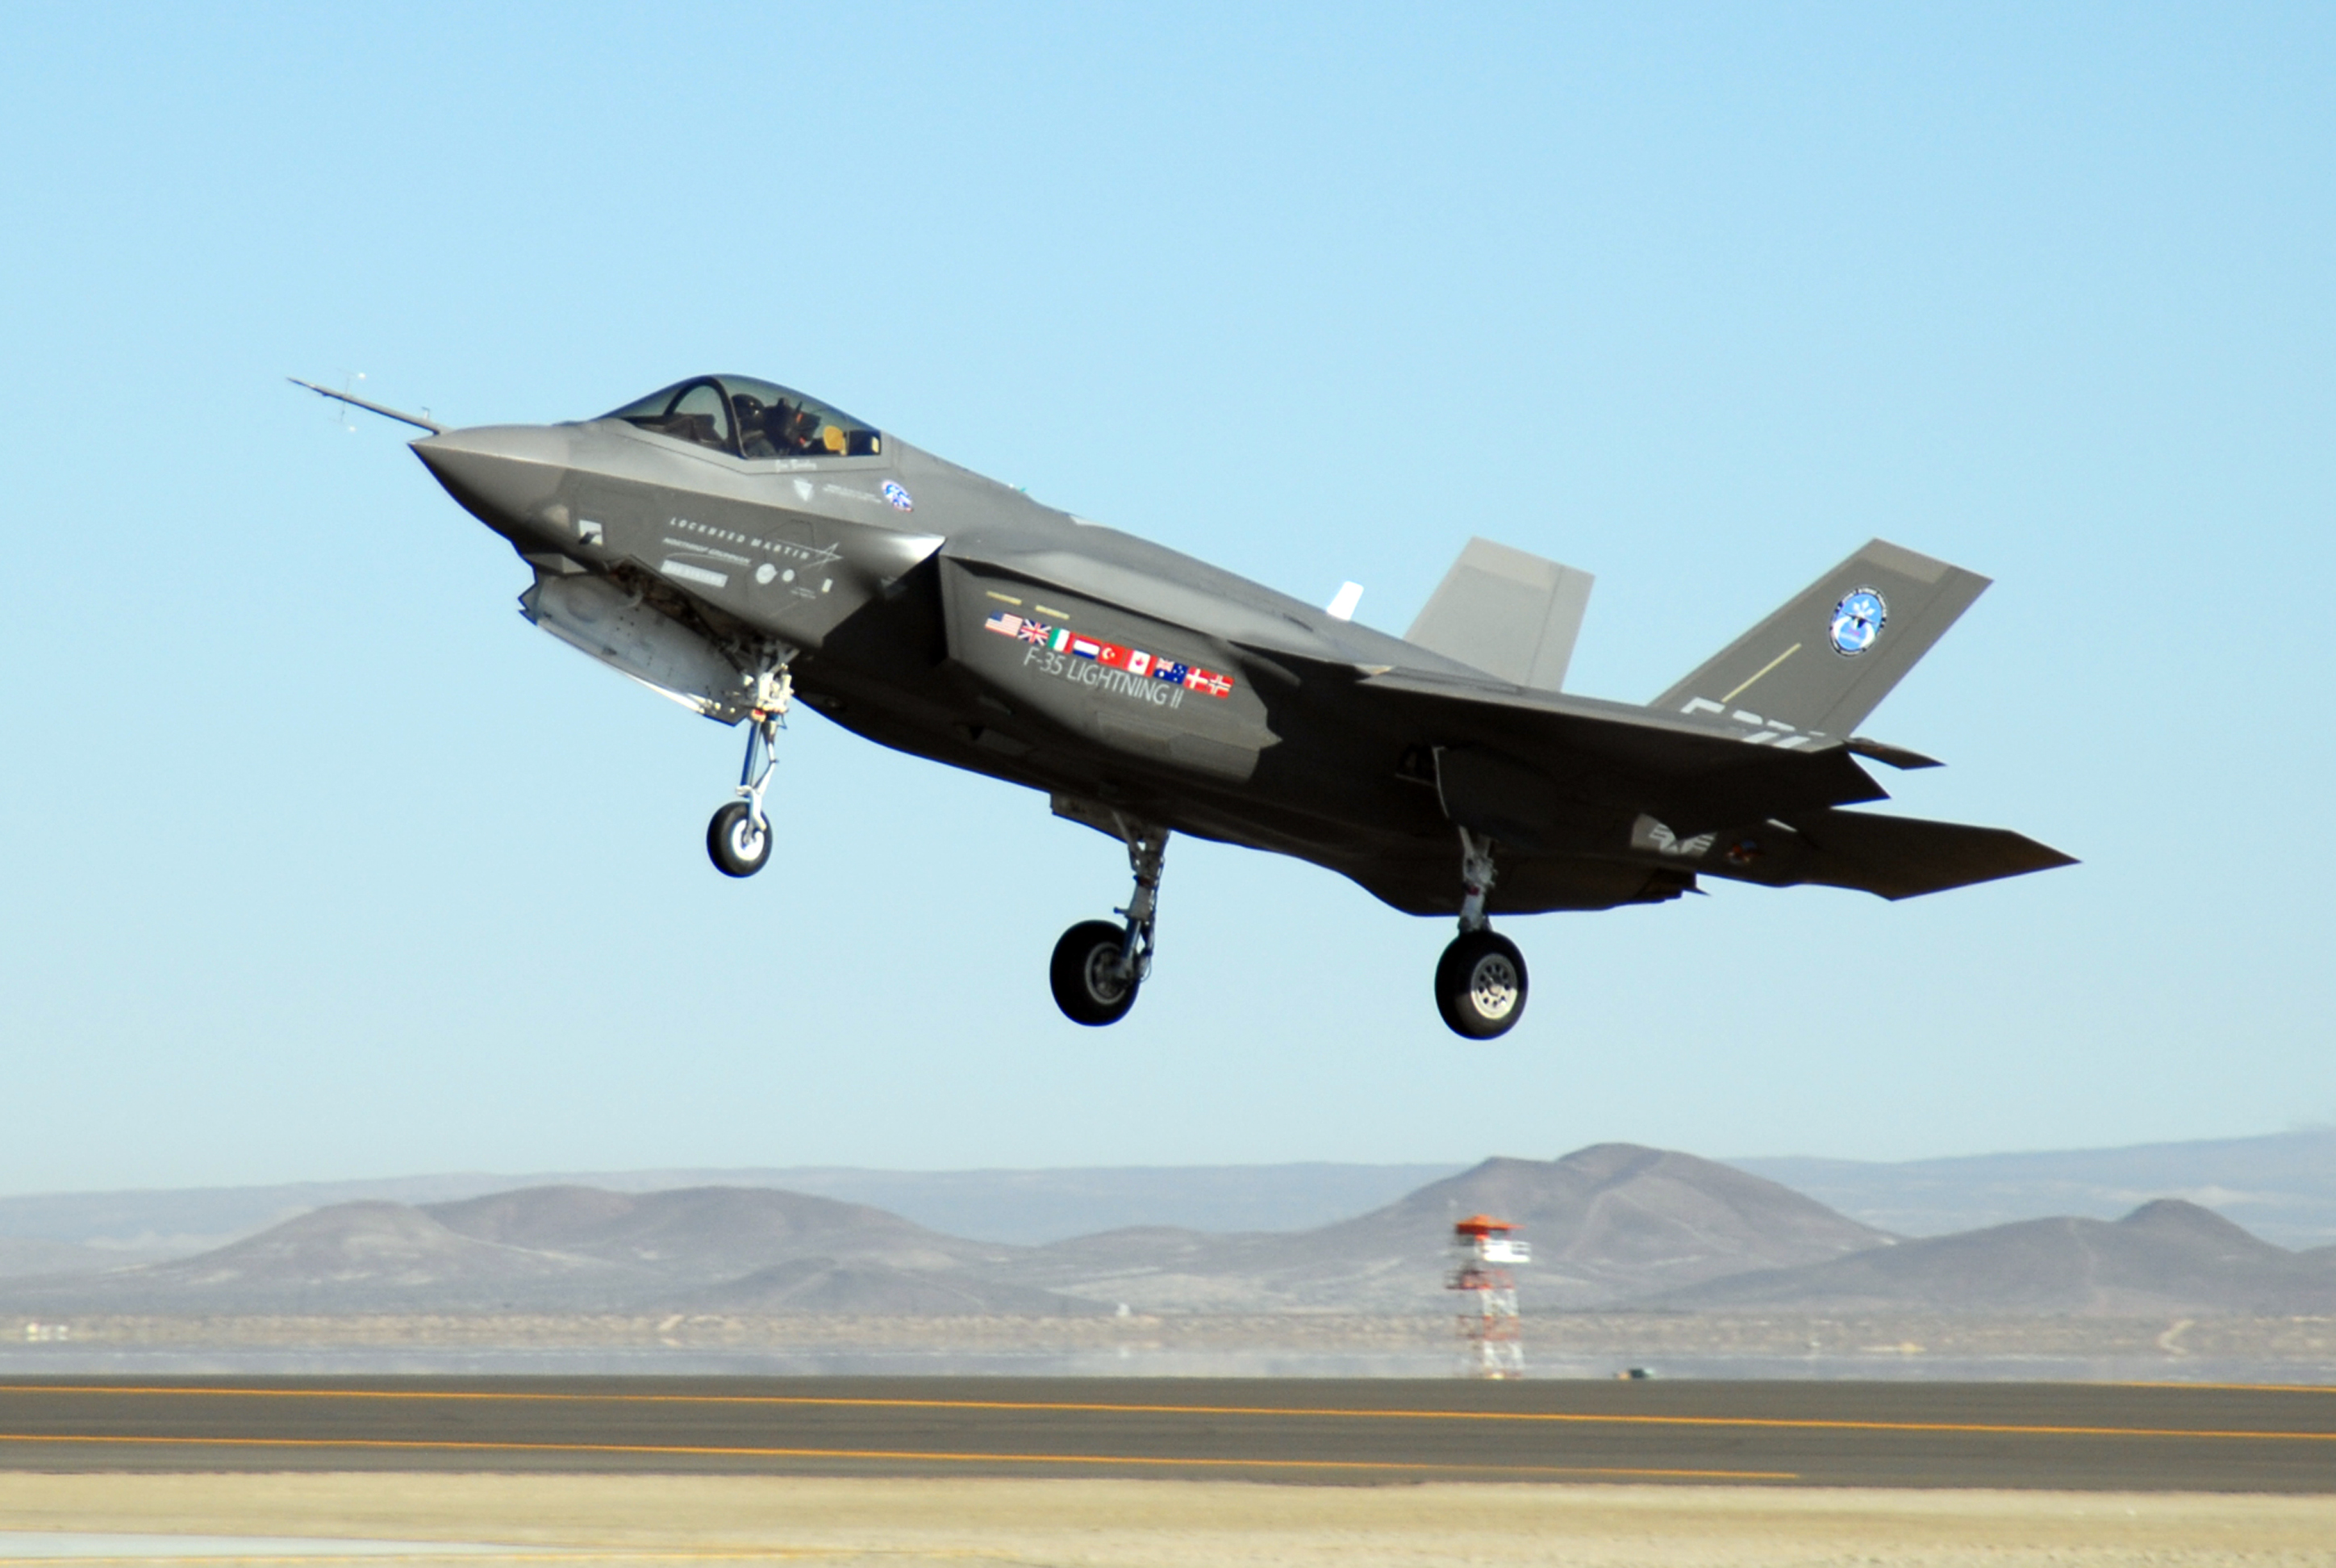 F-35 Lightning II taking off from Edwards Air Force Base